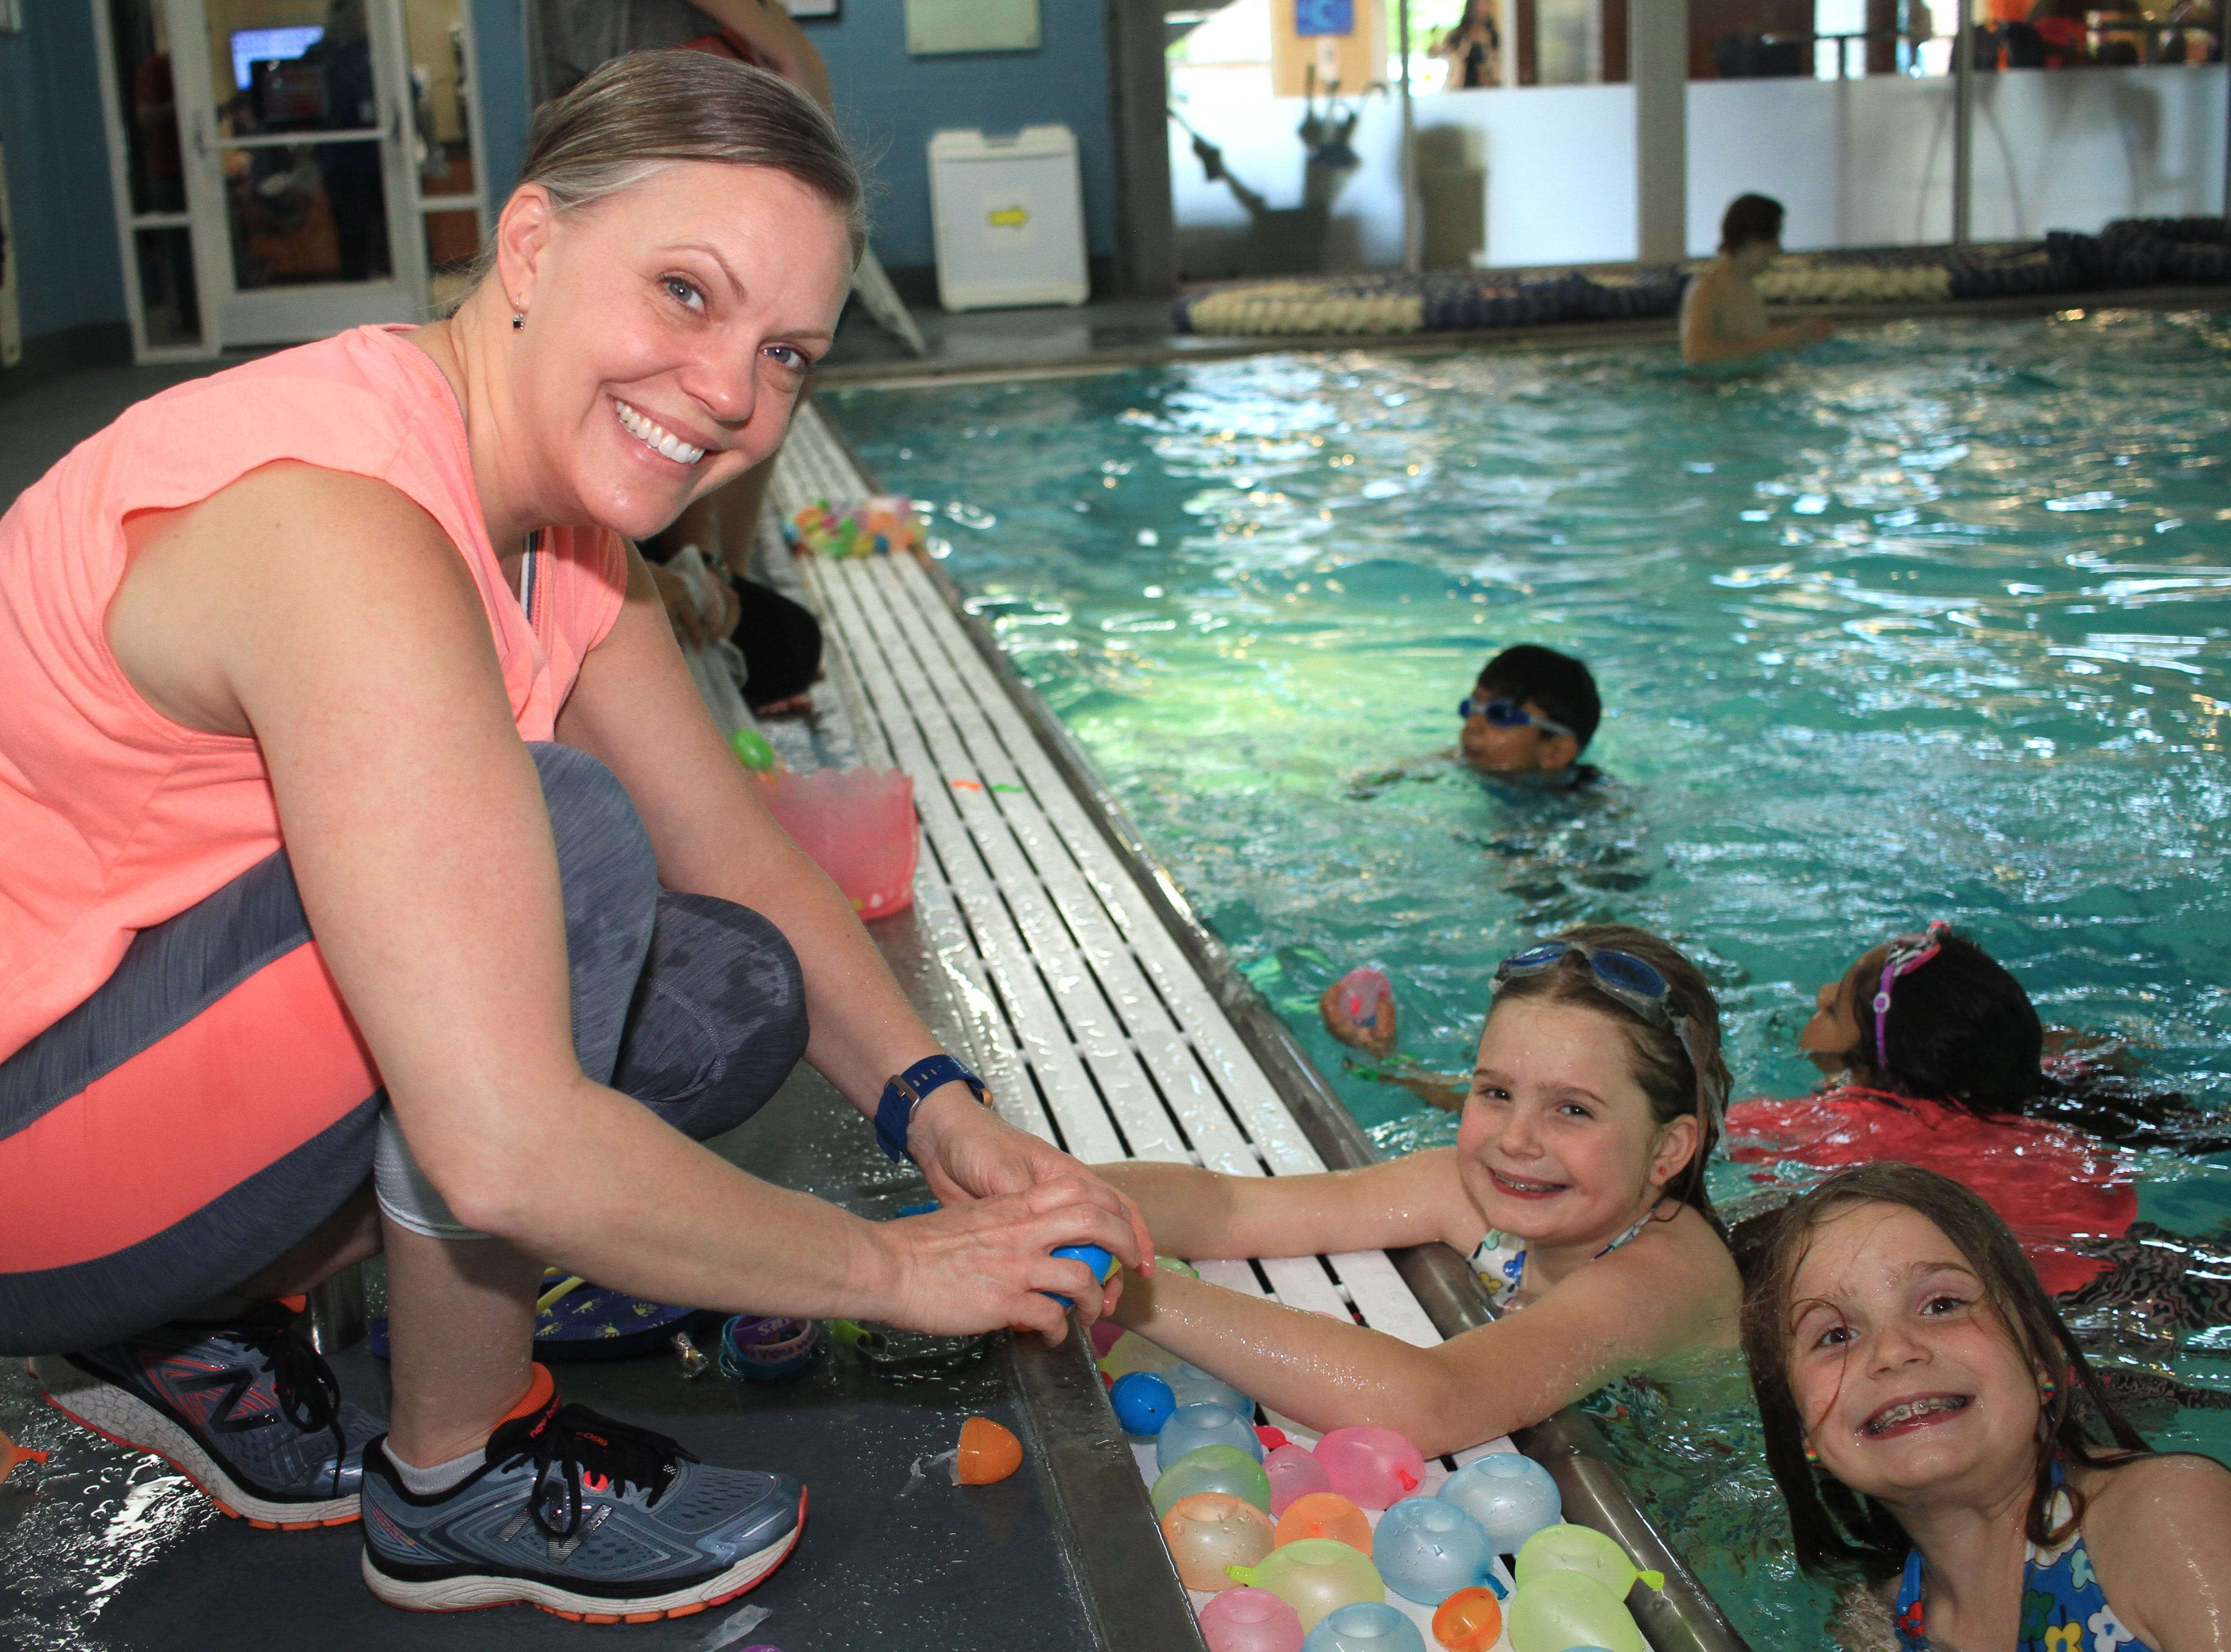 Jennifer Zehnder helps her twins Evenly and Abigail haul in their eggs at an Easter egg hunt in the pool at the Sumner County YMCA in Hendersonville, TN on Saturday, March 13, 2019.